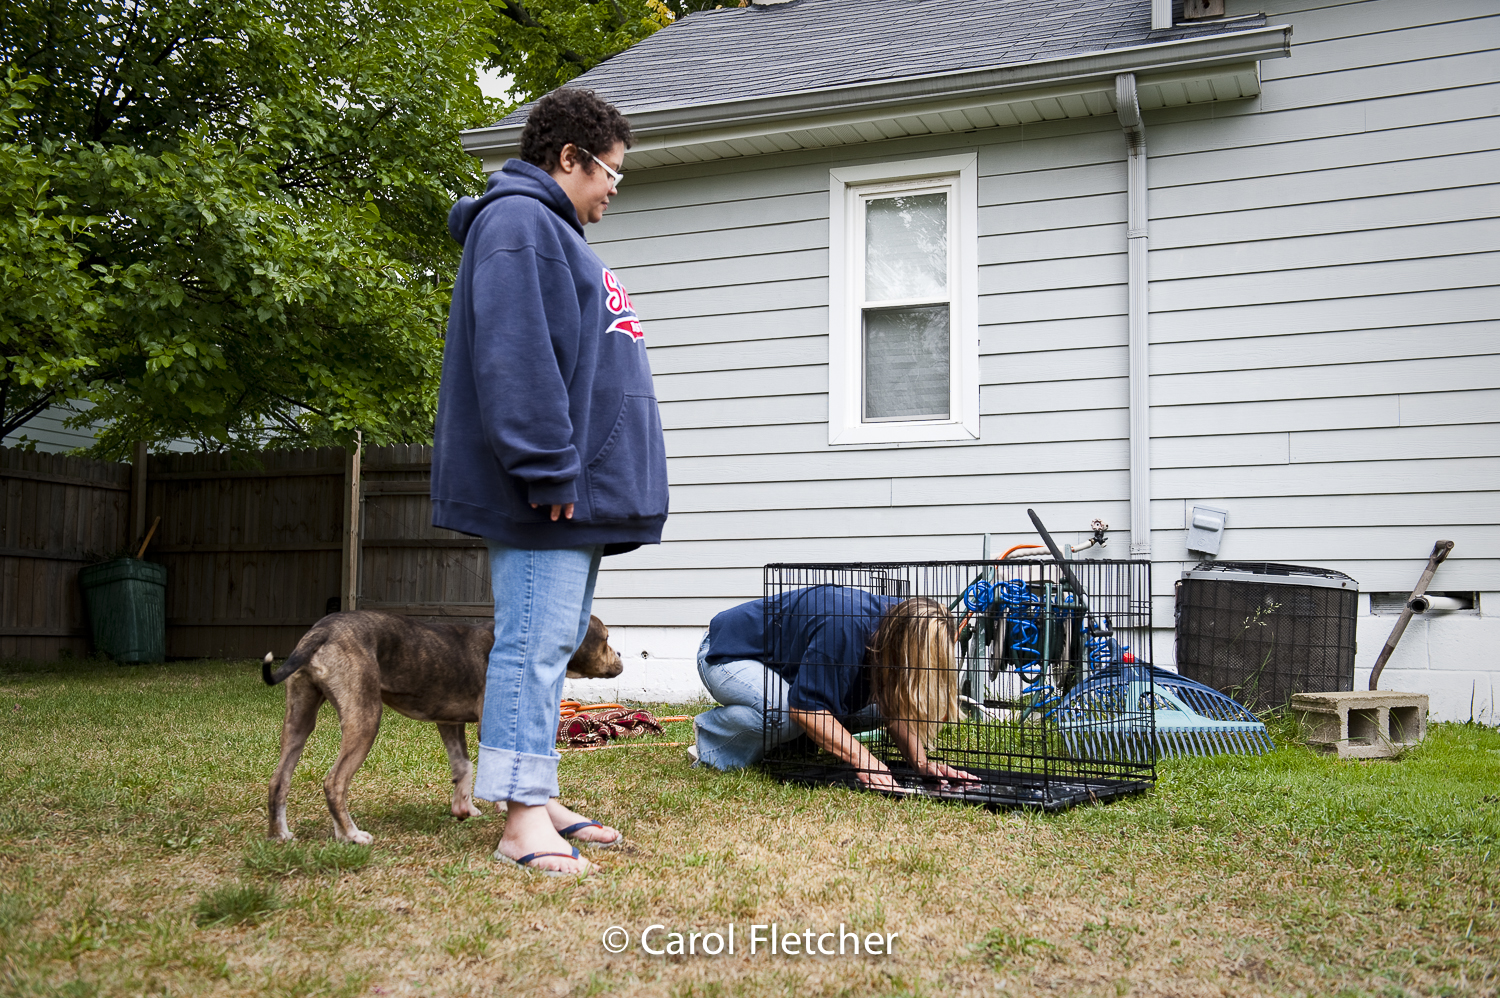 crate cage dog cleaning yard rescuer